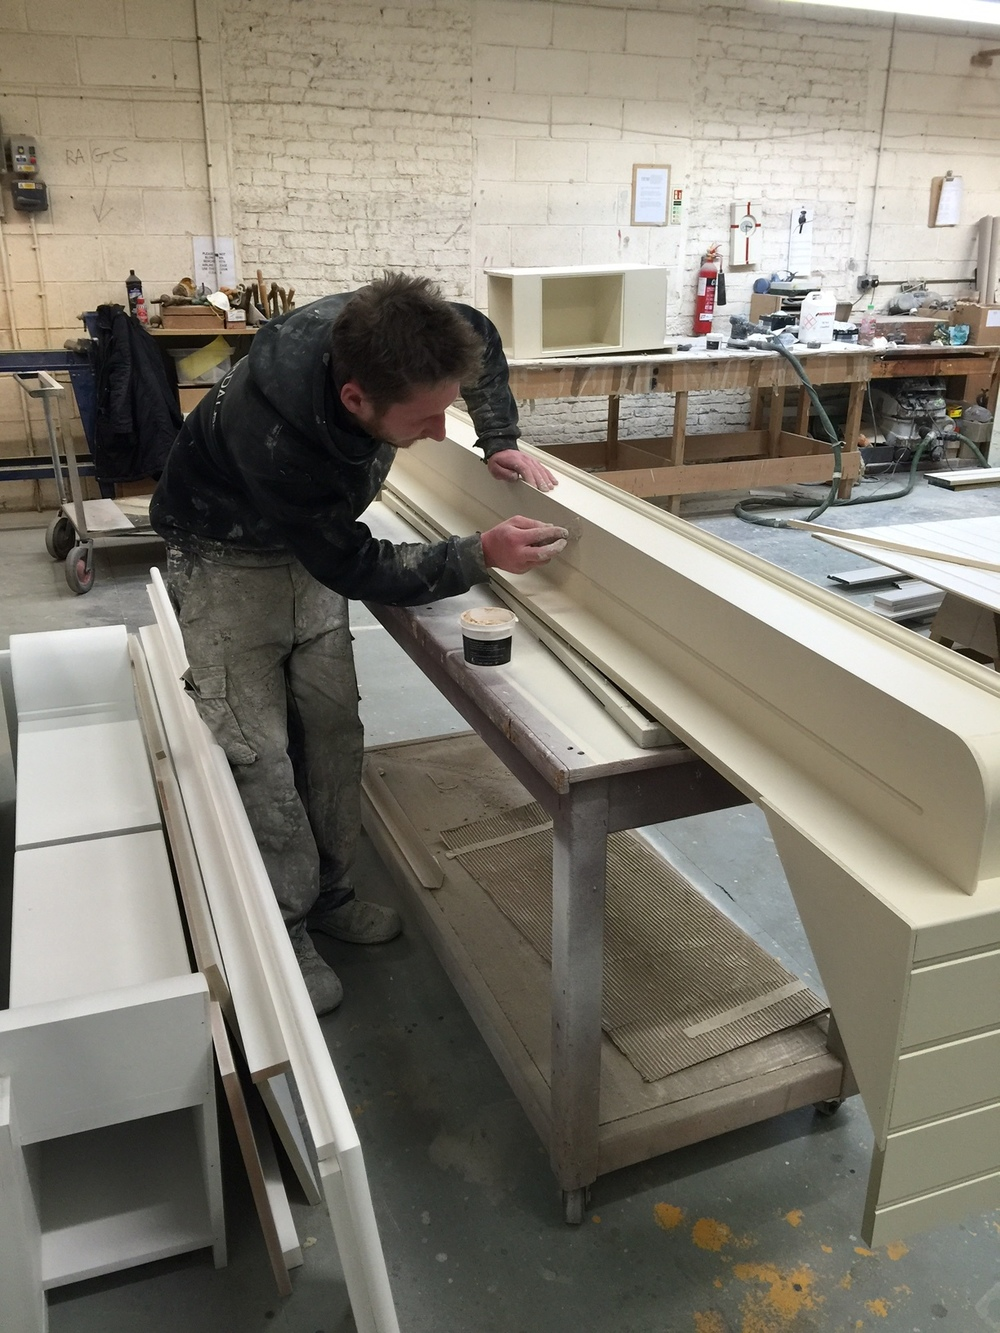 And here is Danny casting an eagle eye over it,  to make sure the finish is perfect  before it goes to our client as part of a beautiful new kitchen.